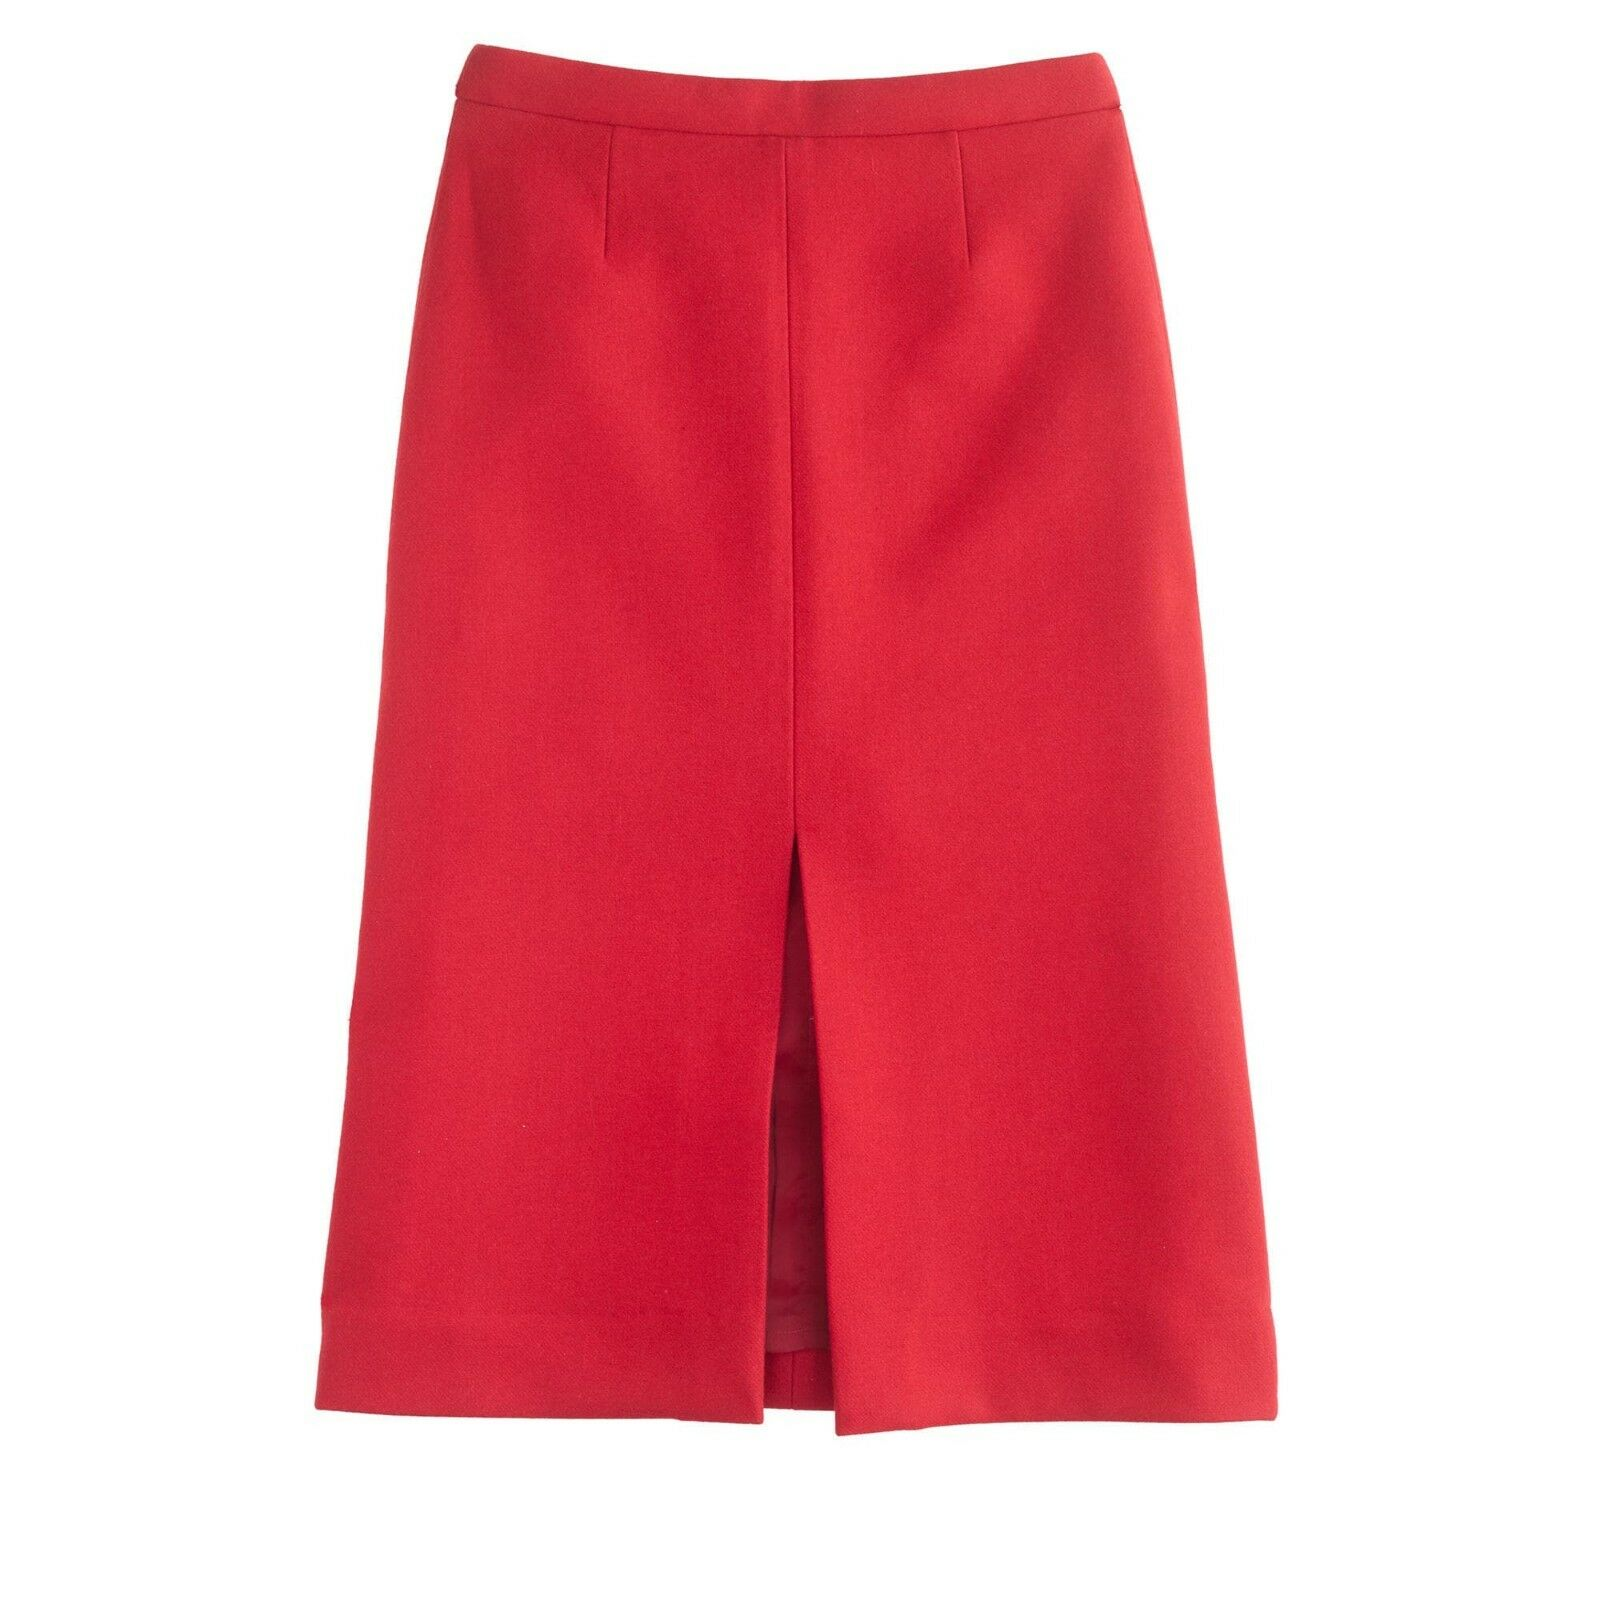 NWT J CREW  148 Cerise Red A-LINE BONDED SKIRT Bonded Wool Sz 4 B5590 Front Slit